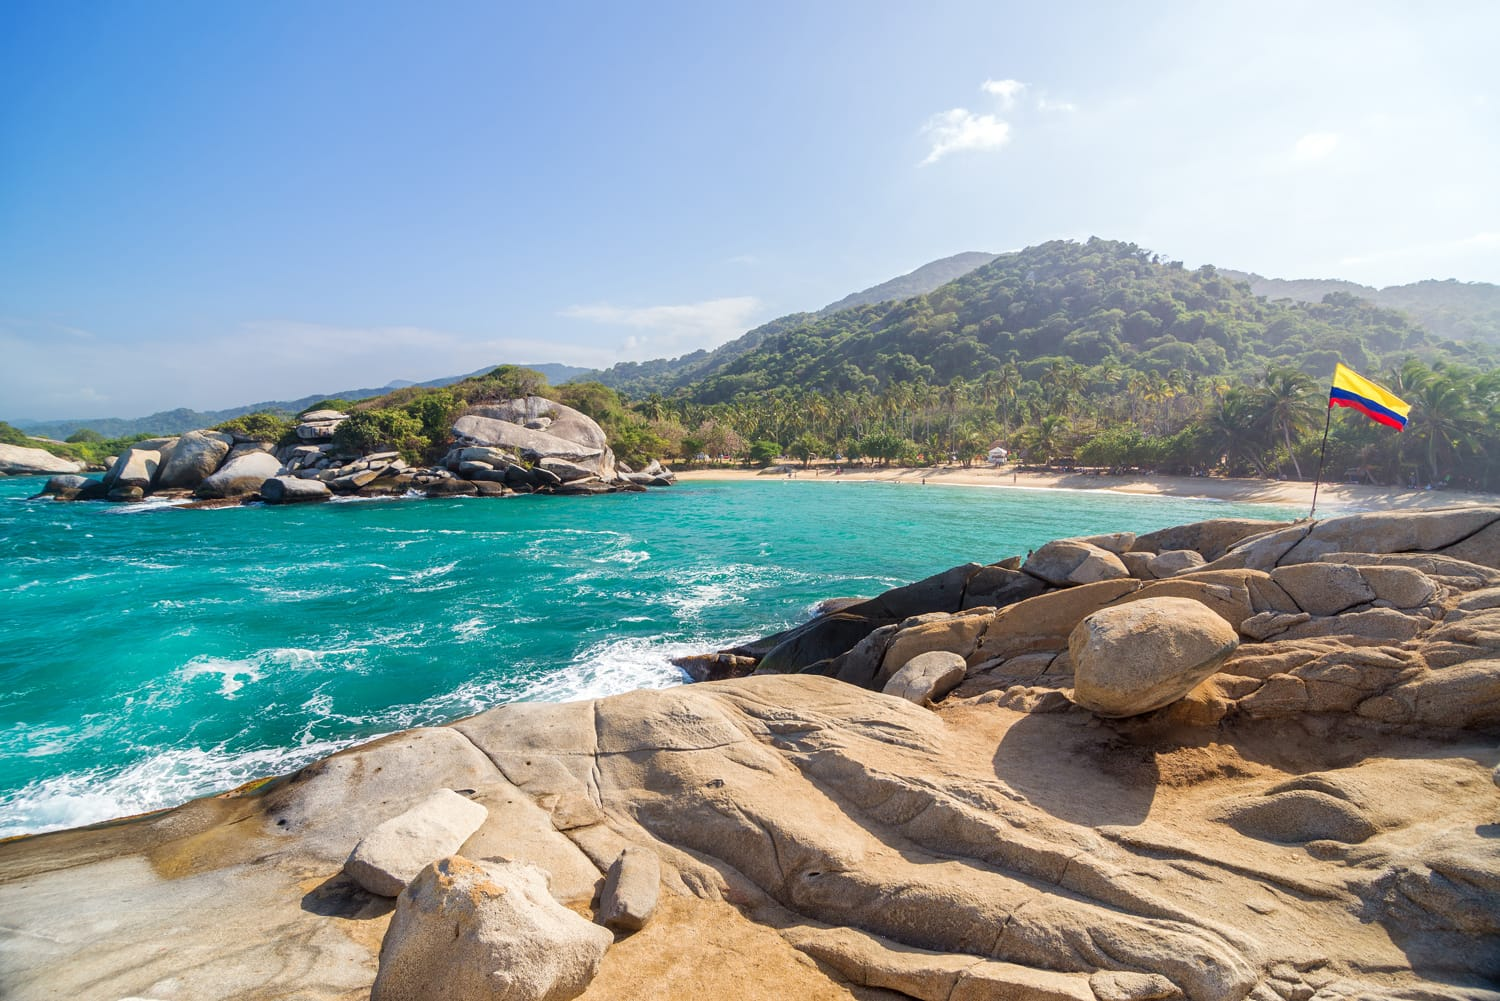 Tropical beach in Tayrona National Park in Colombia with a Colombian flag visible